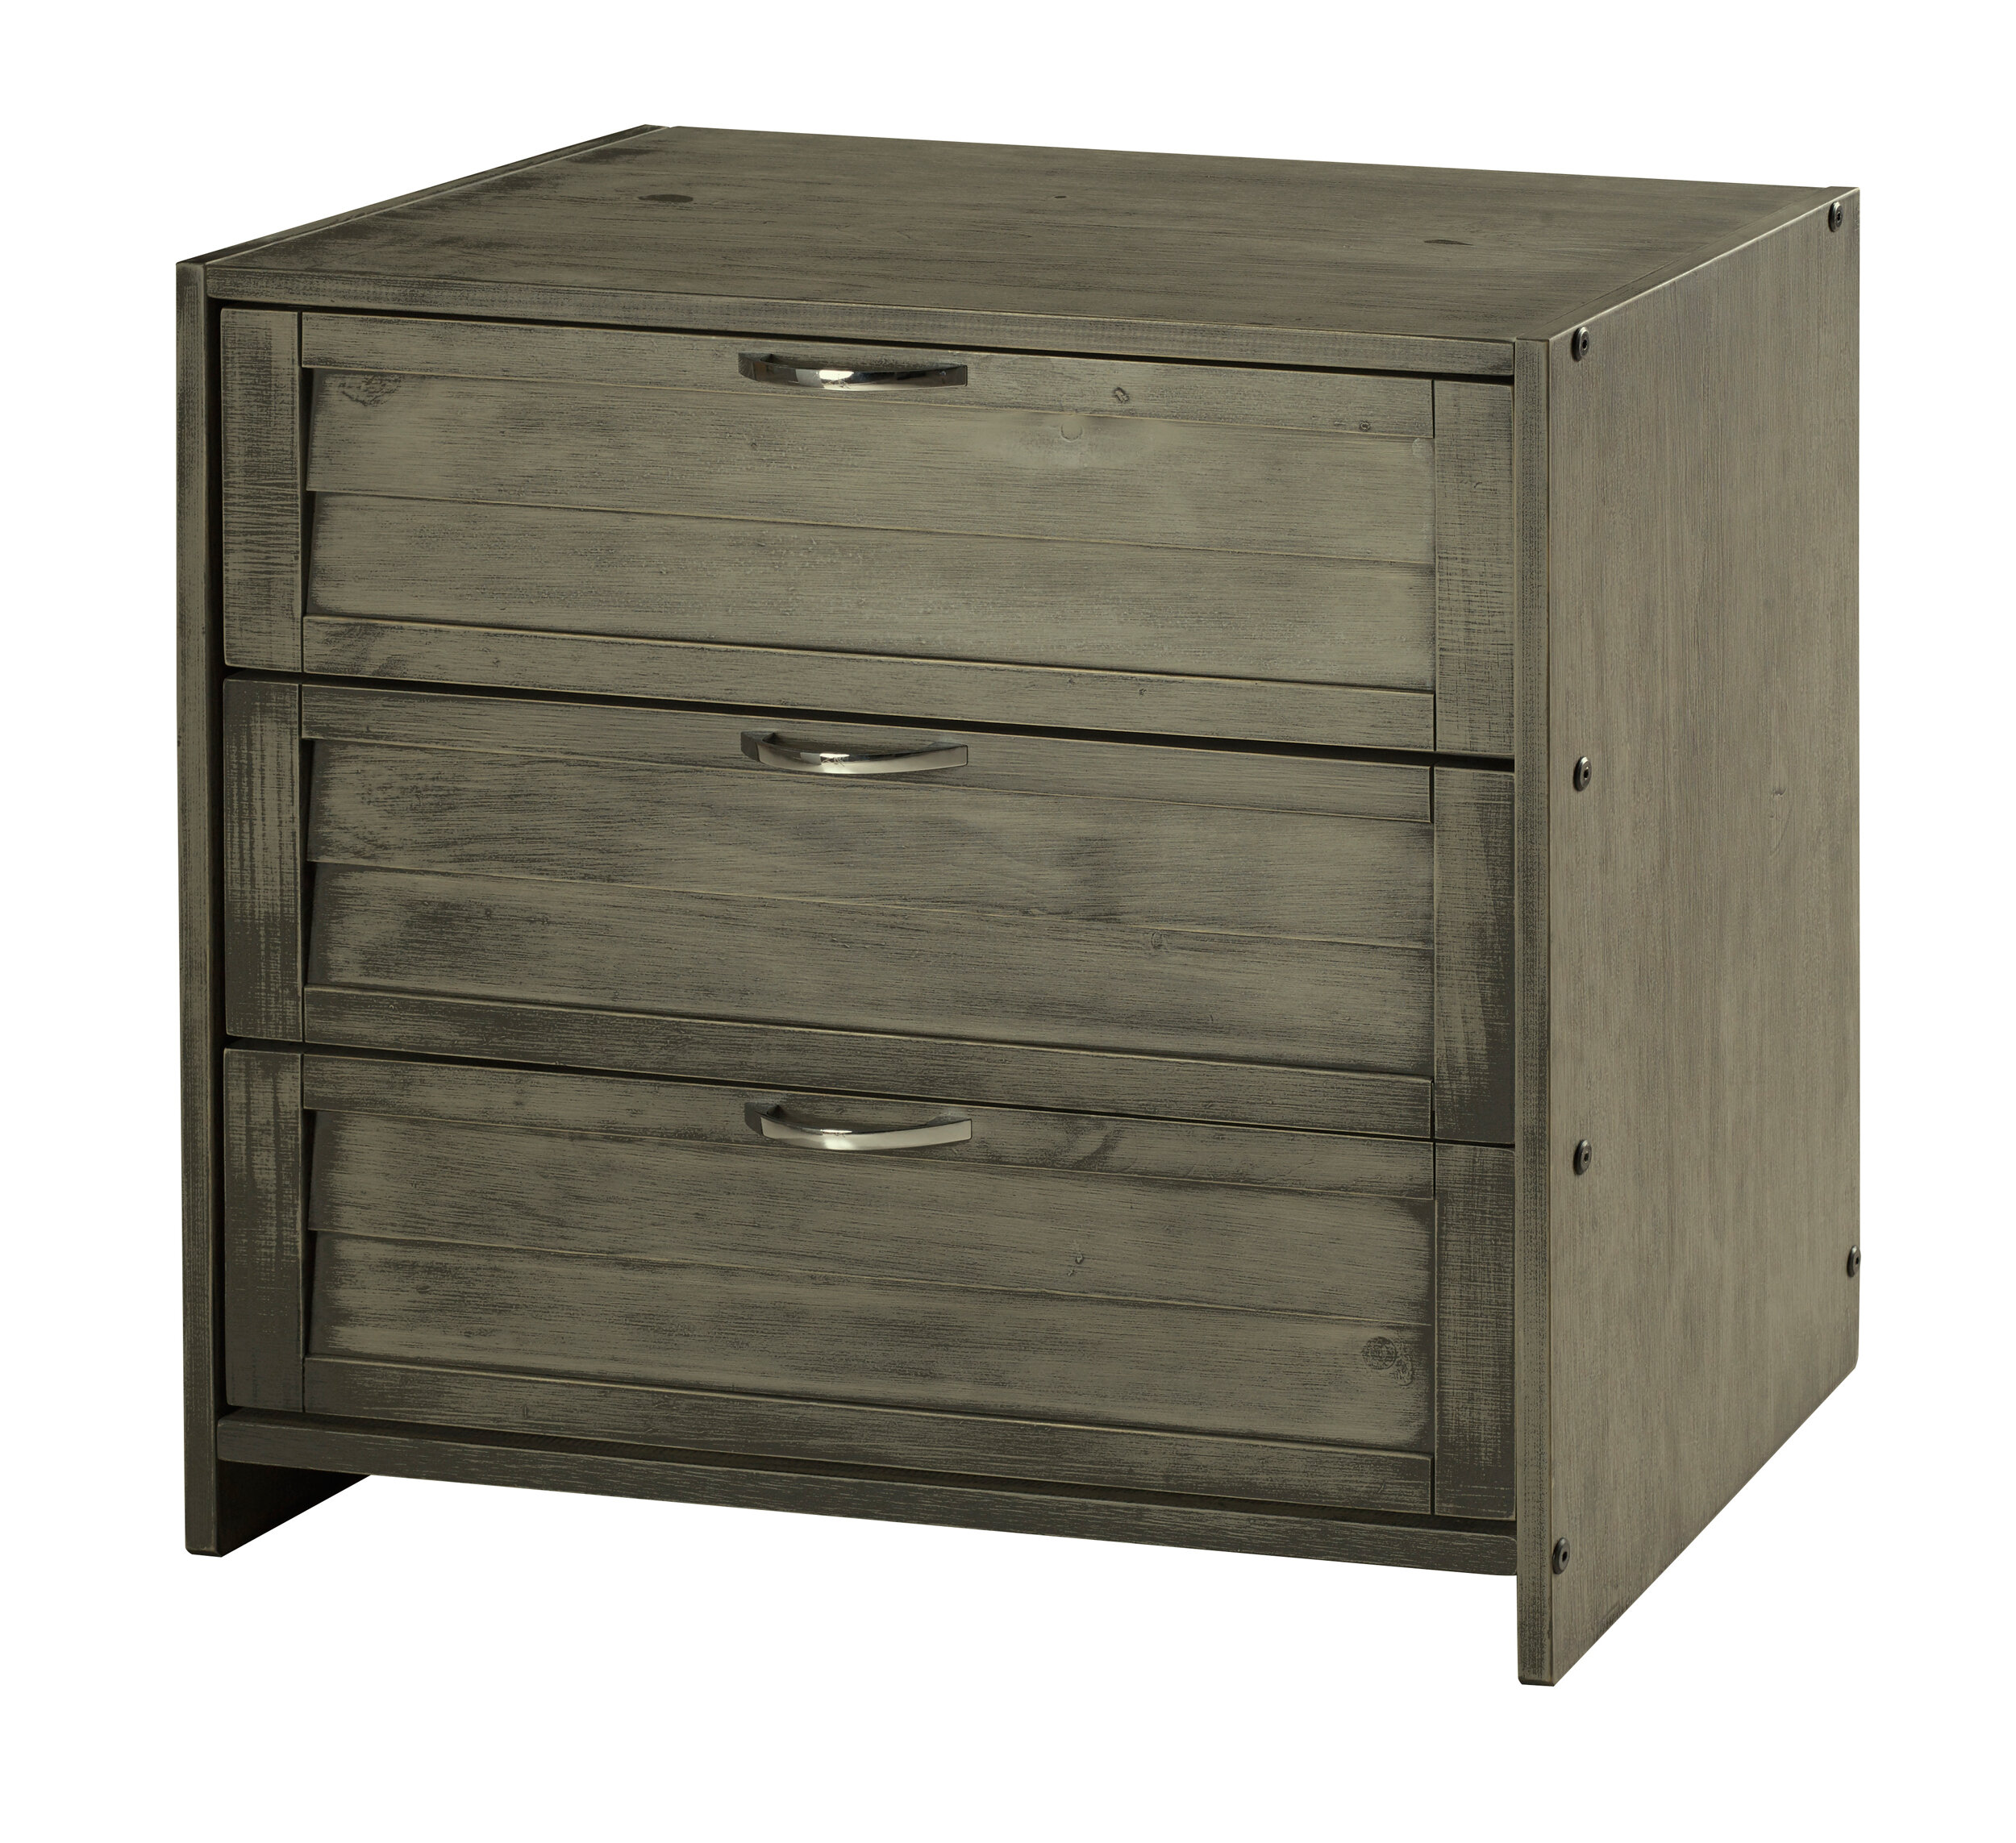 Harriet Bee Felecia 3 Drawer Dresser